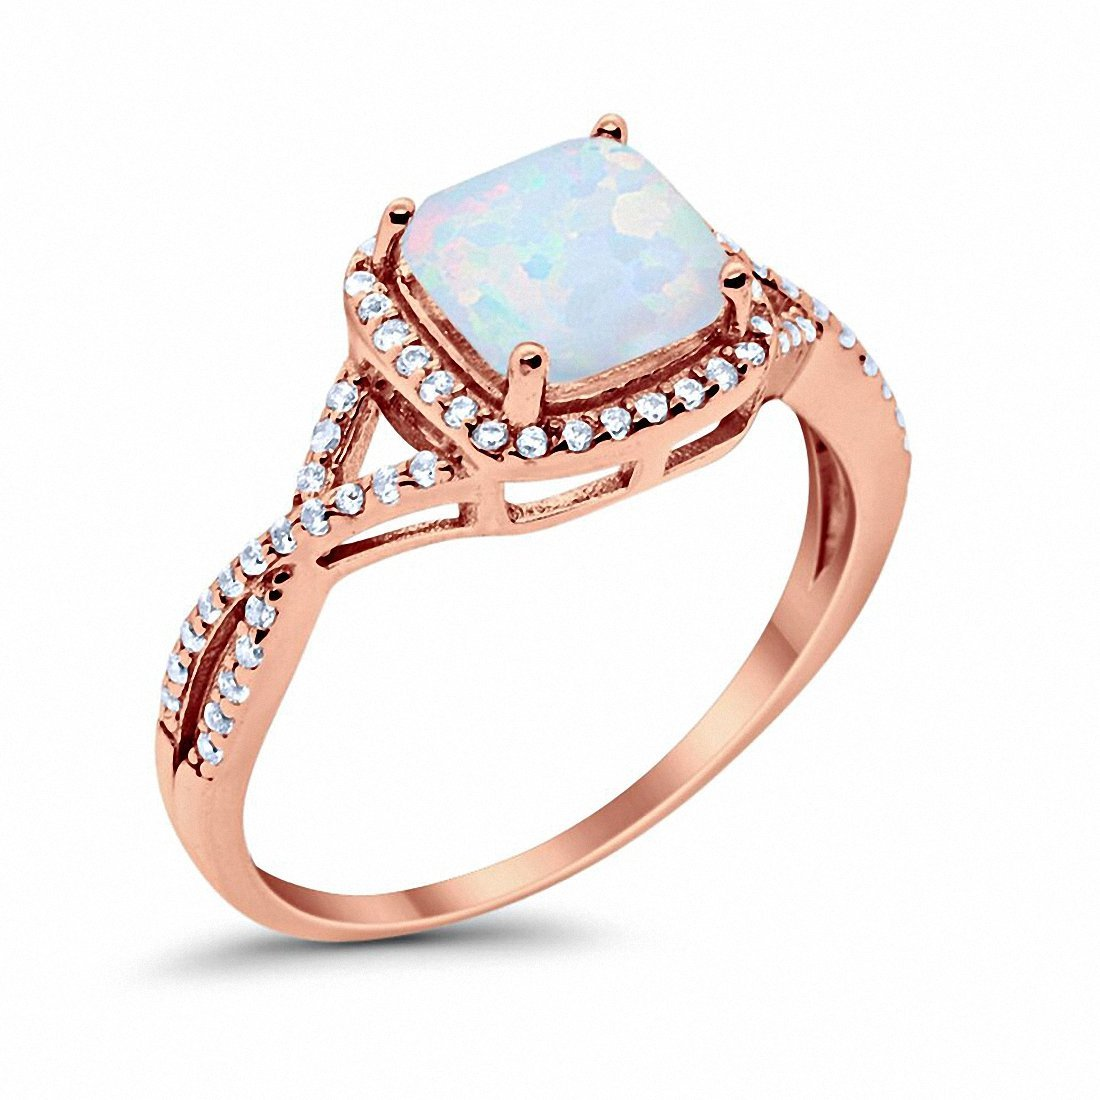 Halo Engagement Ring Rose Tone, Lab Created White Opal 925 Sterling Silver